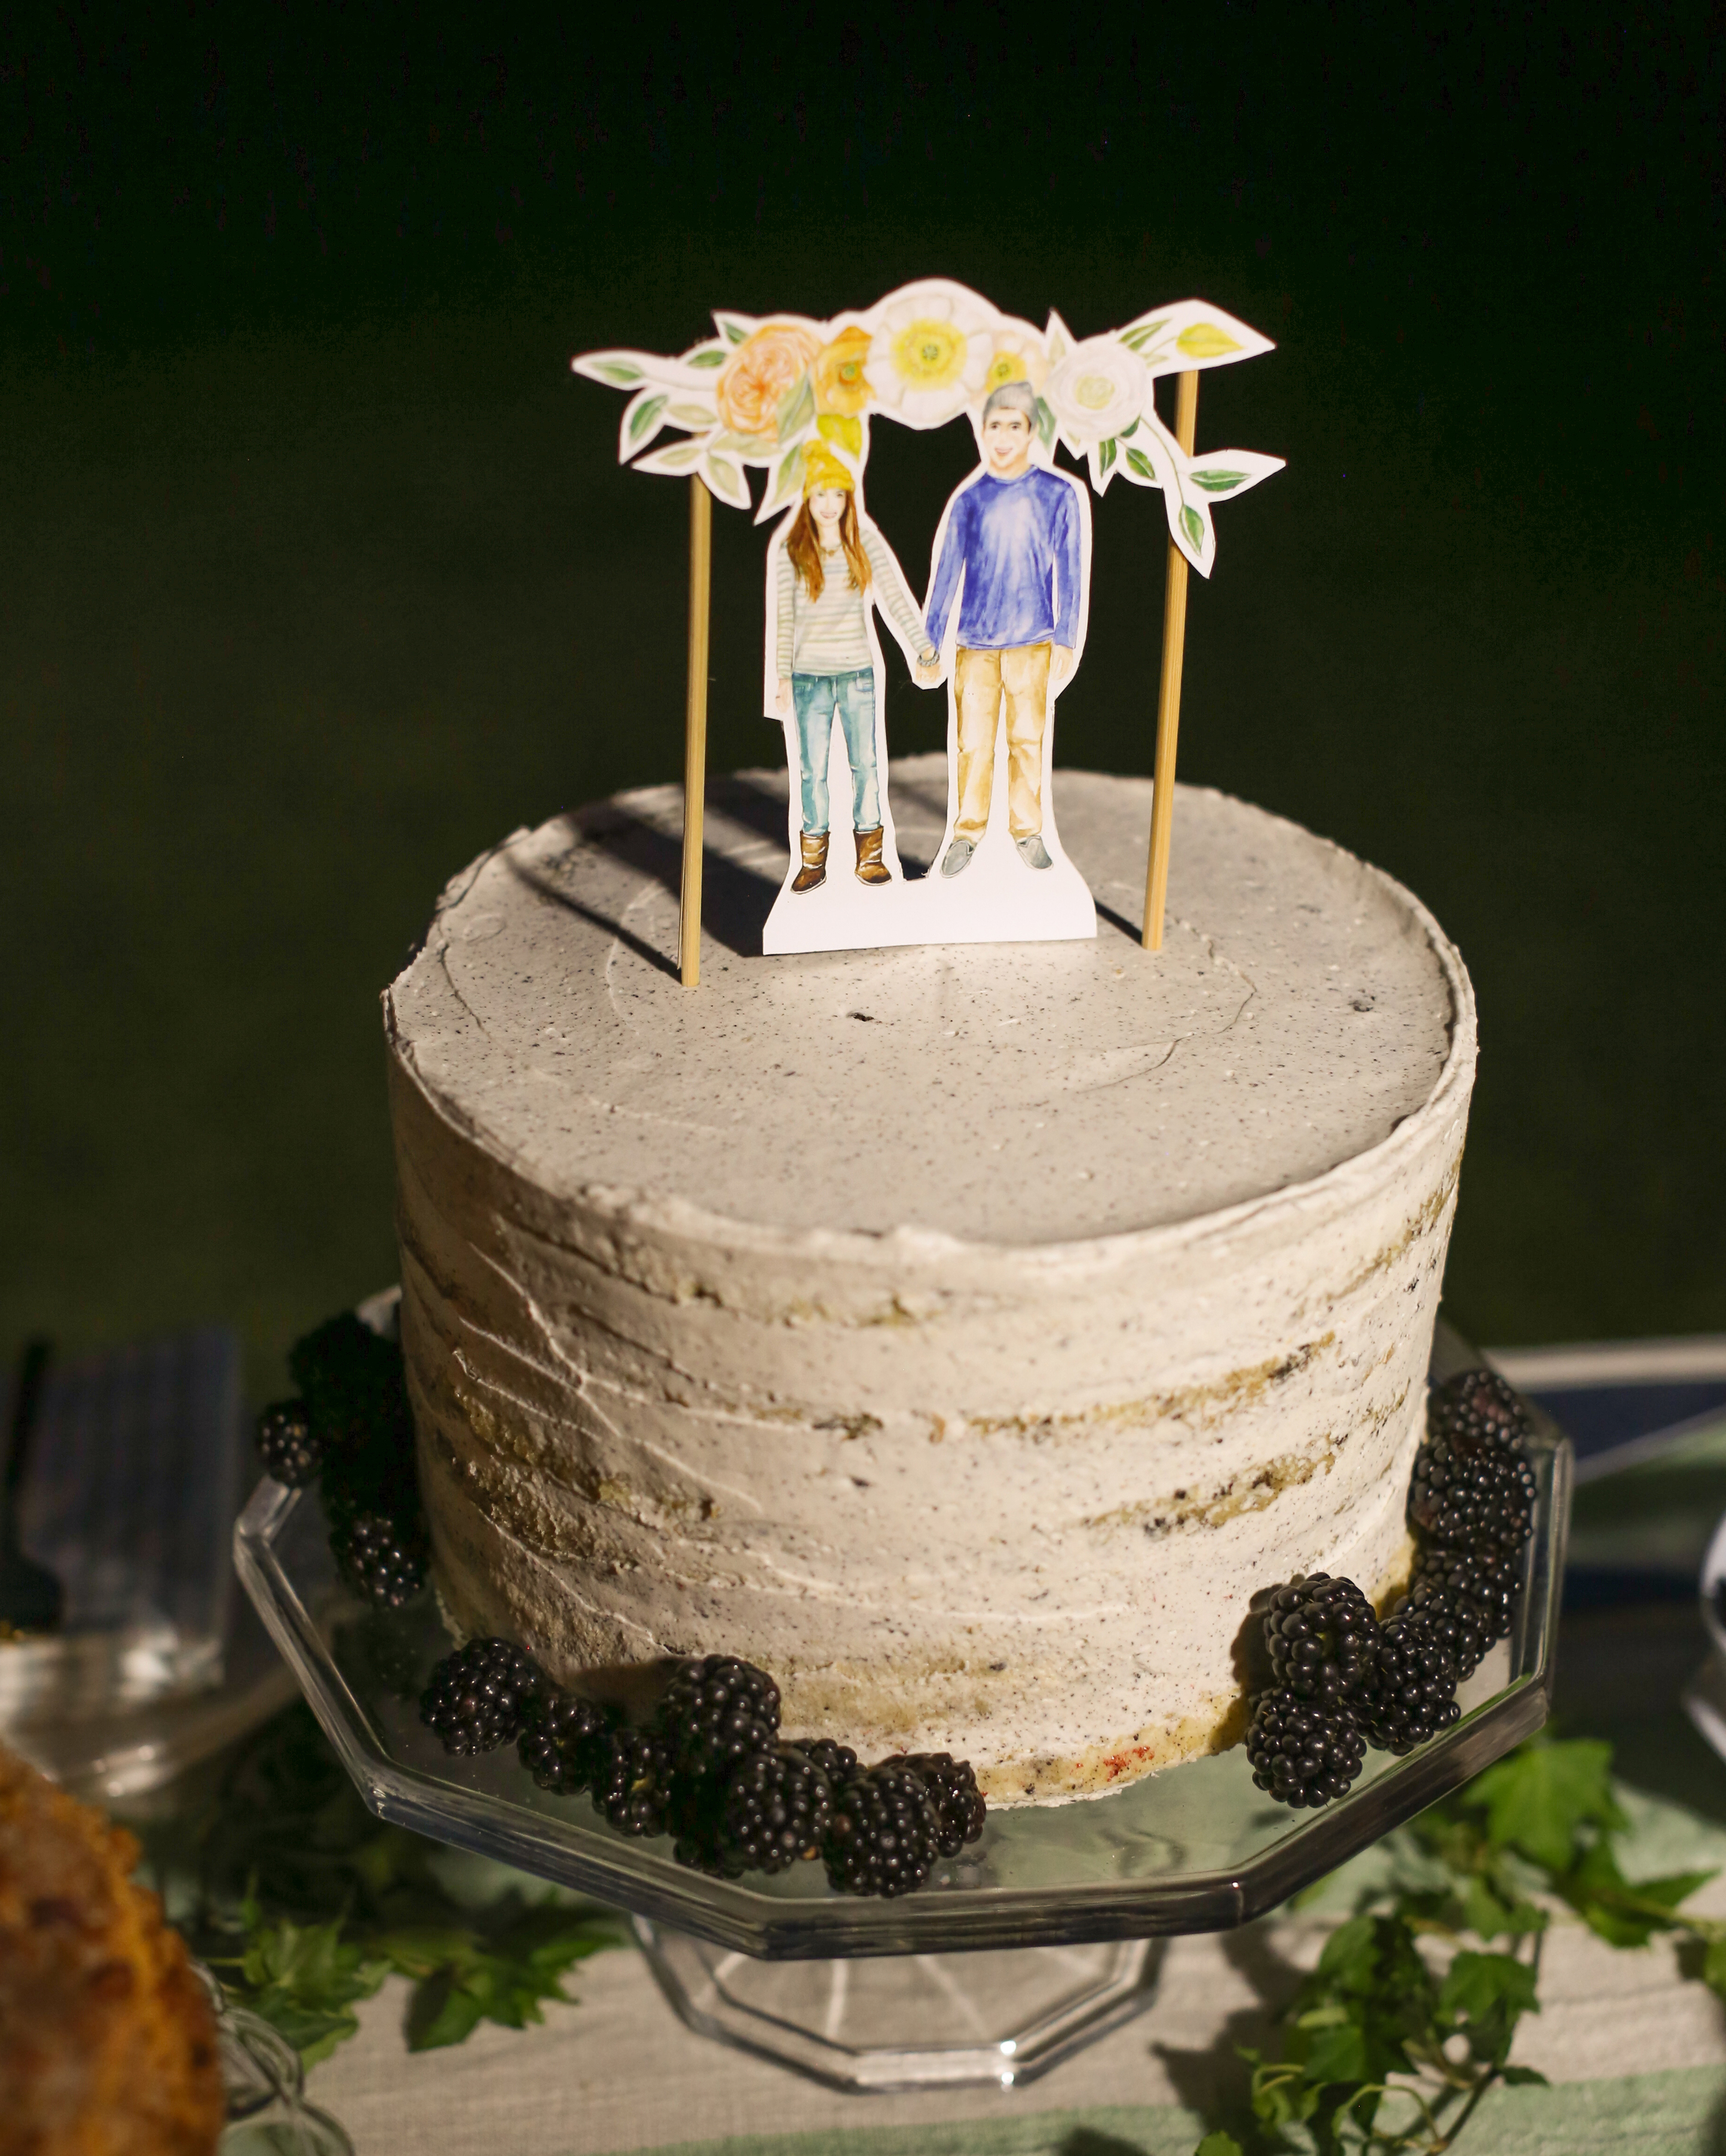 lana-danny-wedding-cake-674-s111831-0315.jpg